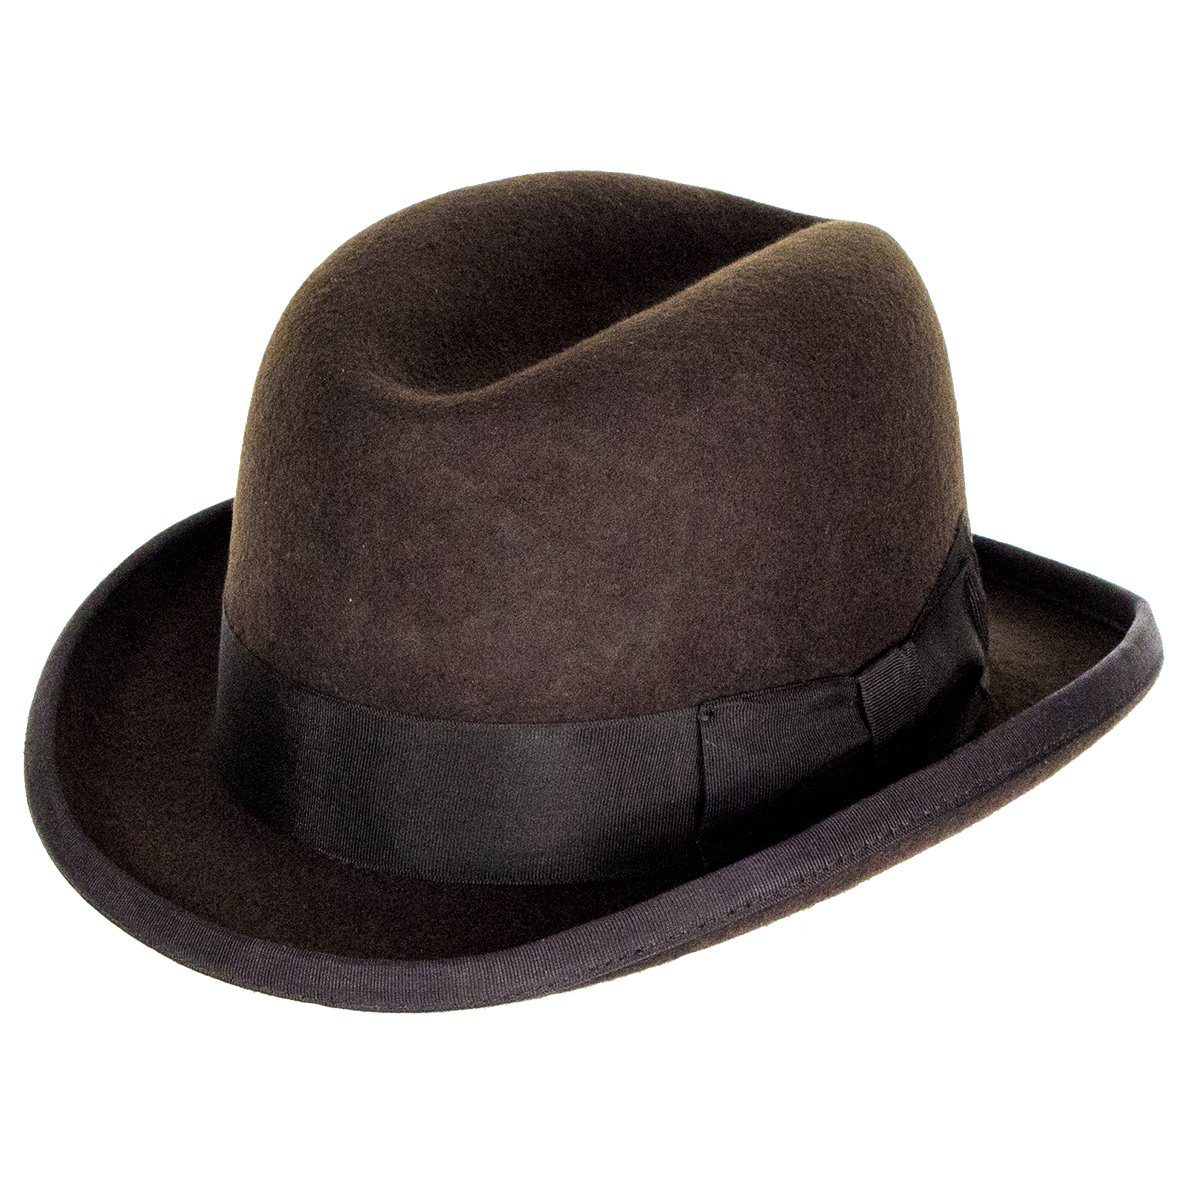 Denton Hats Churchill Homburg Dark Brown